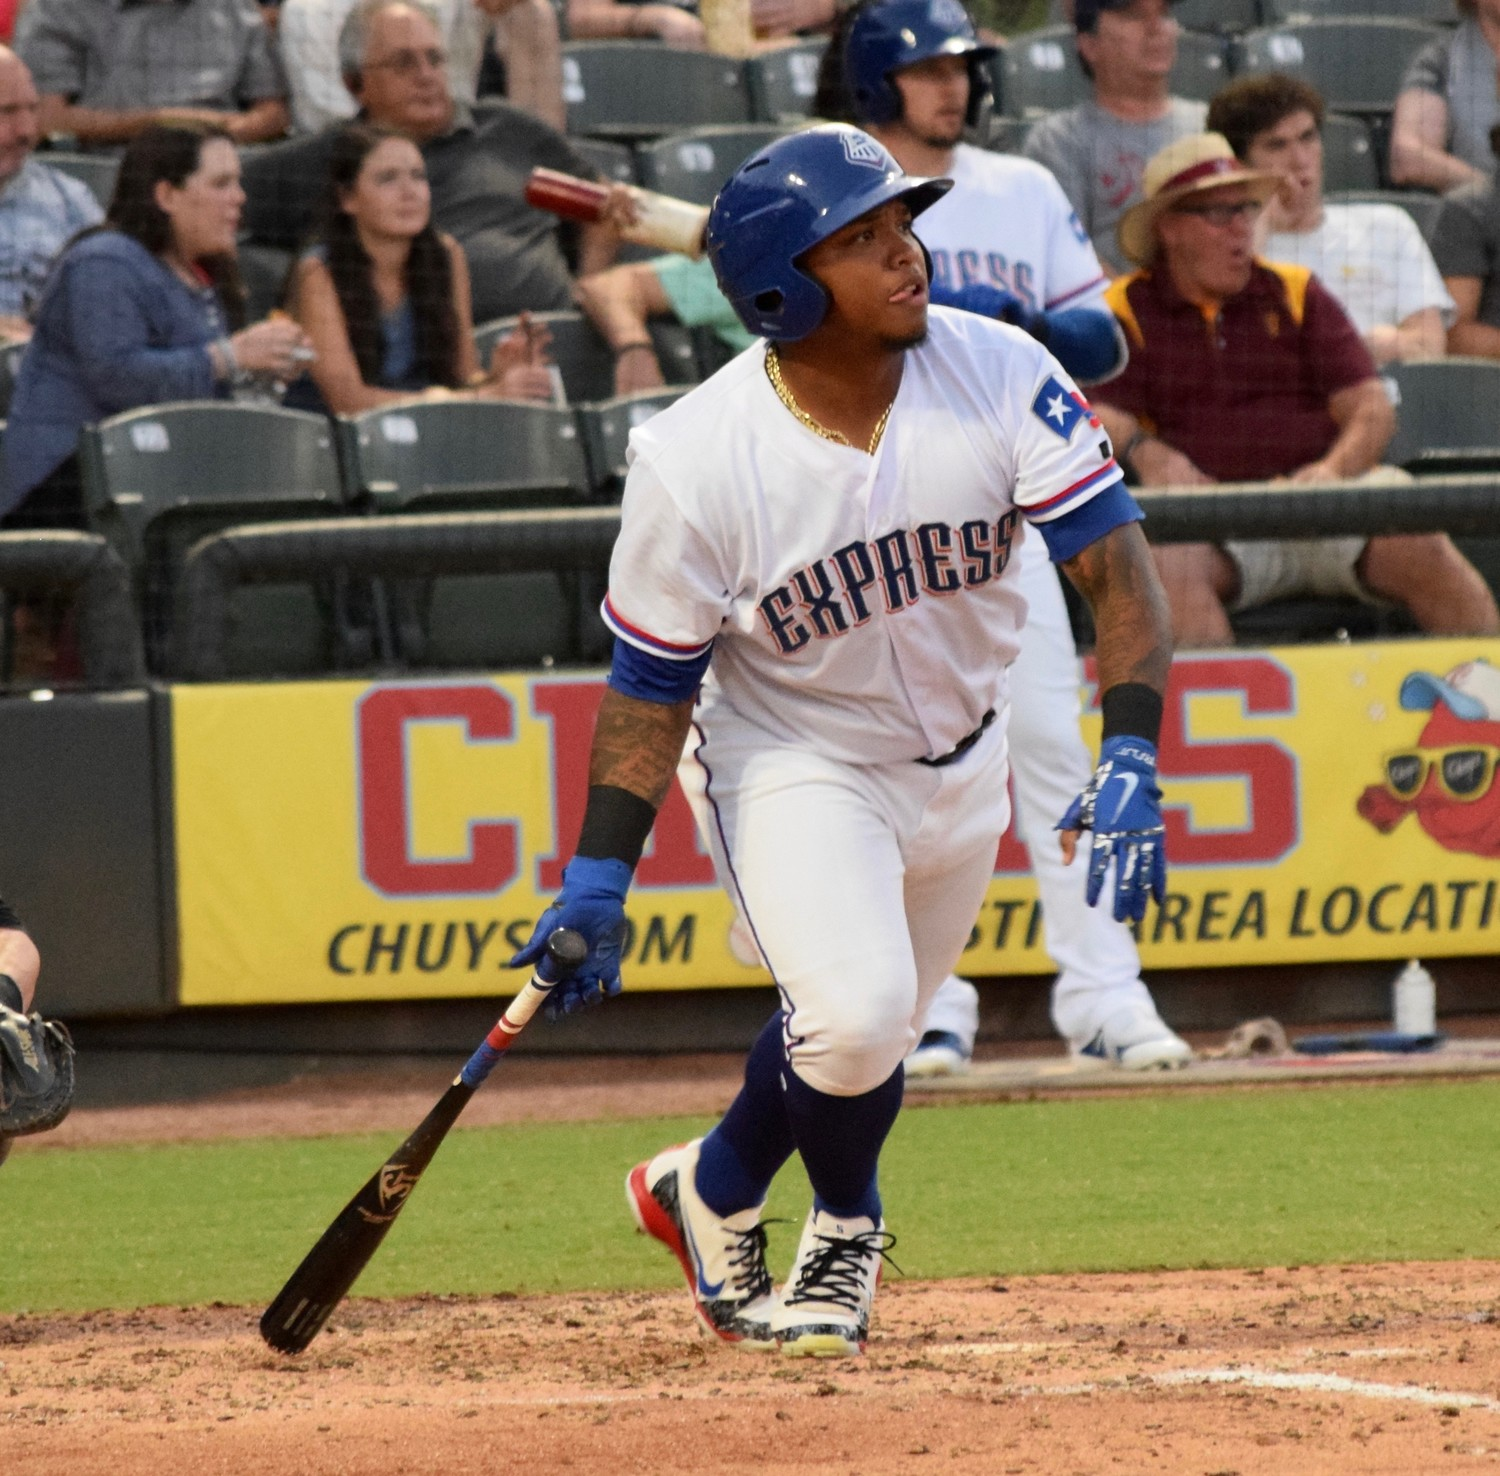 Outfielder Willie Calhoun was called up to the Texas Rangers for the second time in his career this season. During his time with the Express this season, he led the team in most offensive categories.